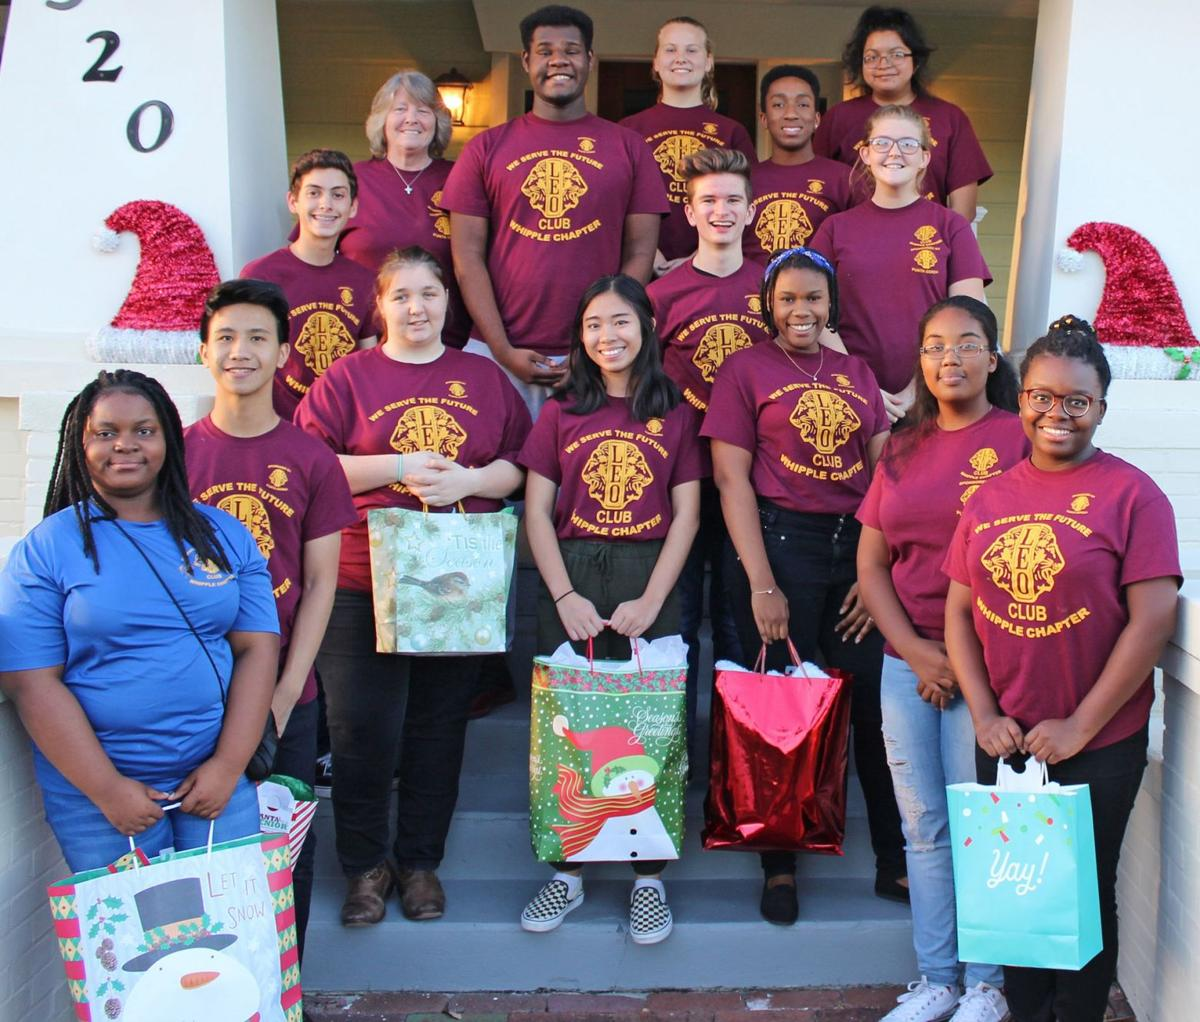 LEO Club members dedicated to helping others